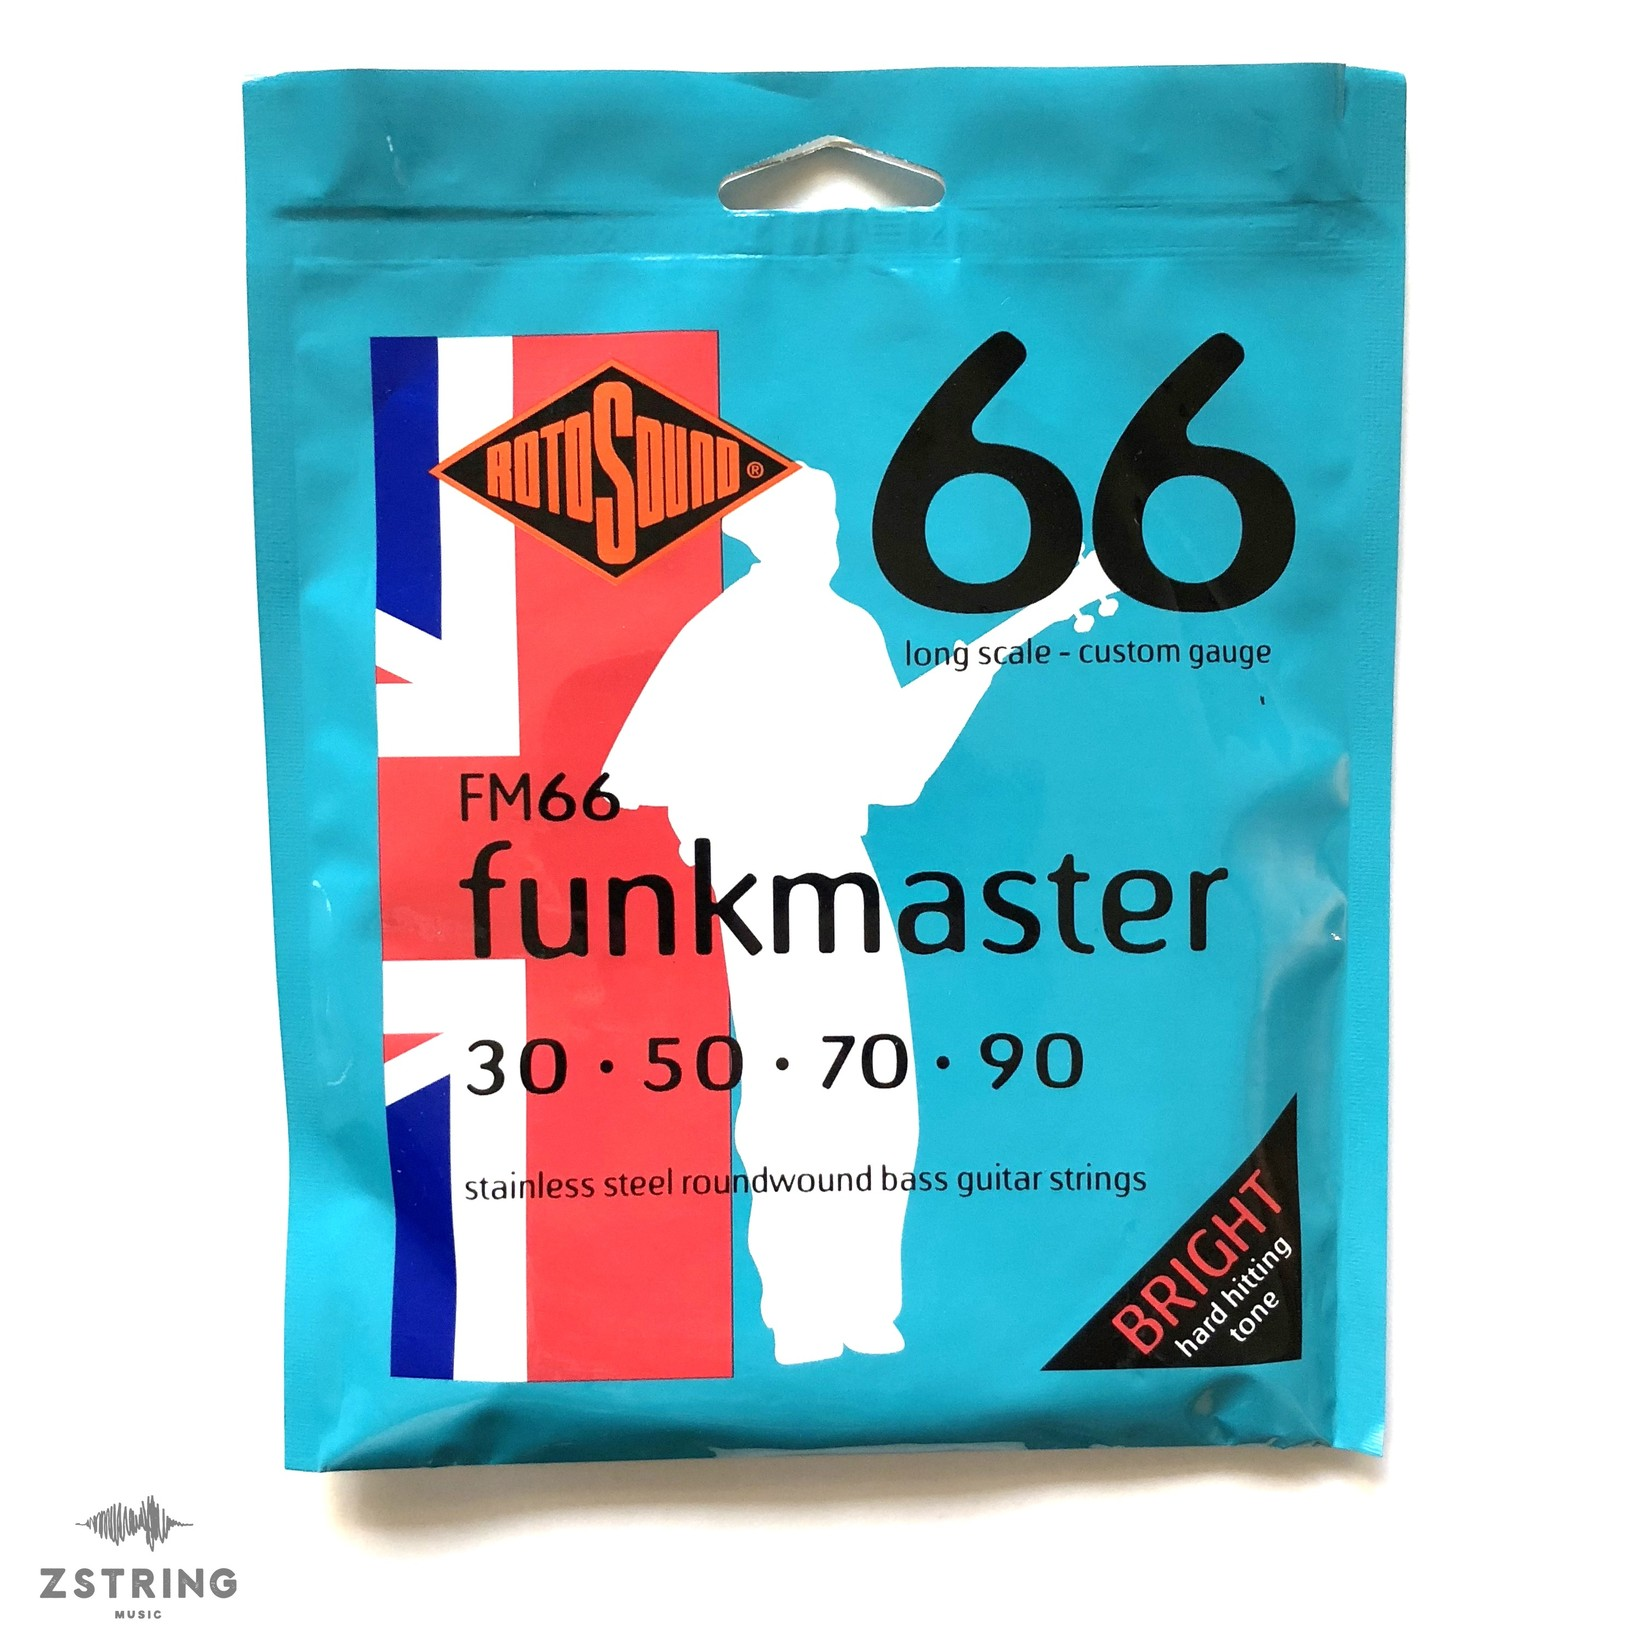 Rotosound Rotosound FM66 Funkmaster Stainless Steel Roundwound Bass Strings - Long Scale - Custom Gauge